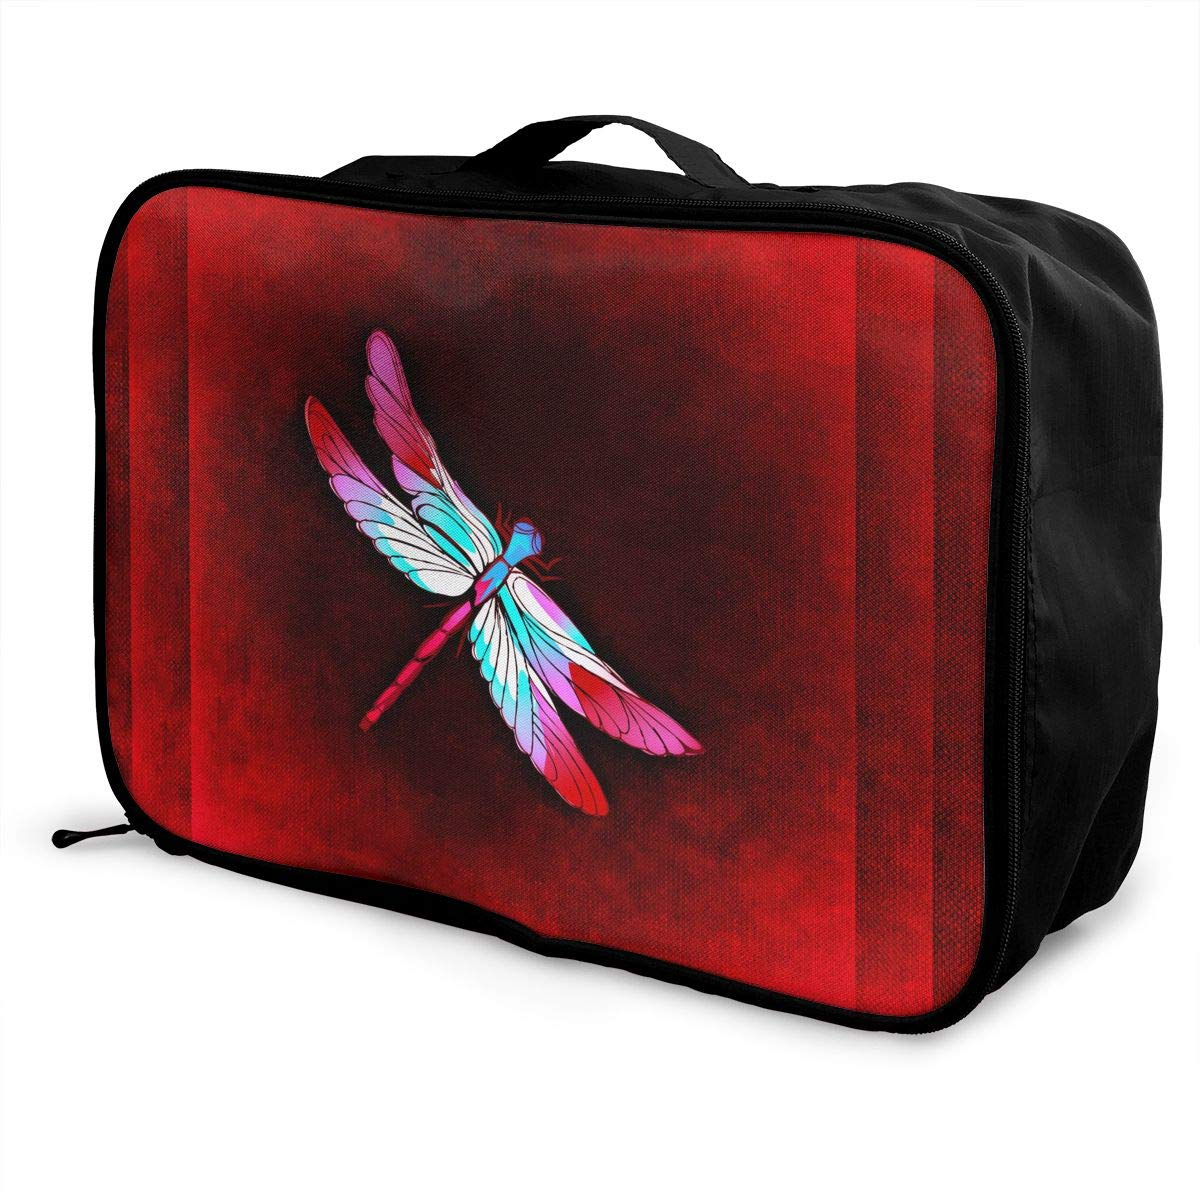 ADGAI Dragonfly On Red Background Canvas Travel Weekender Bag,Fashion Custom Lightweight Large Capacity Portable Luggage Bag,Suitcase Trolley Bag